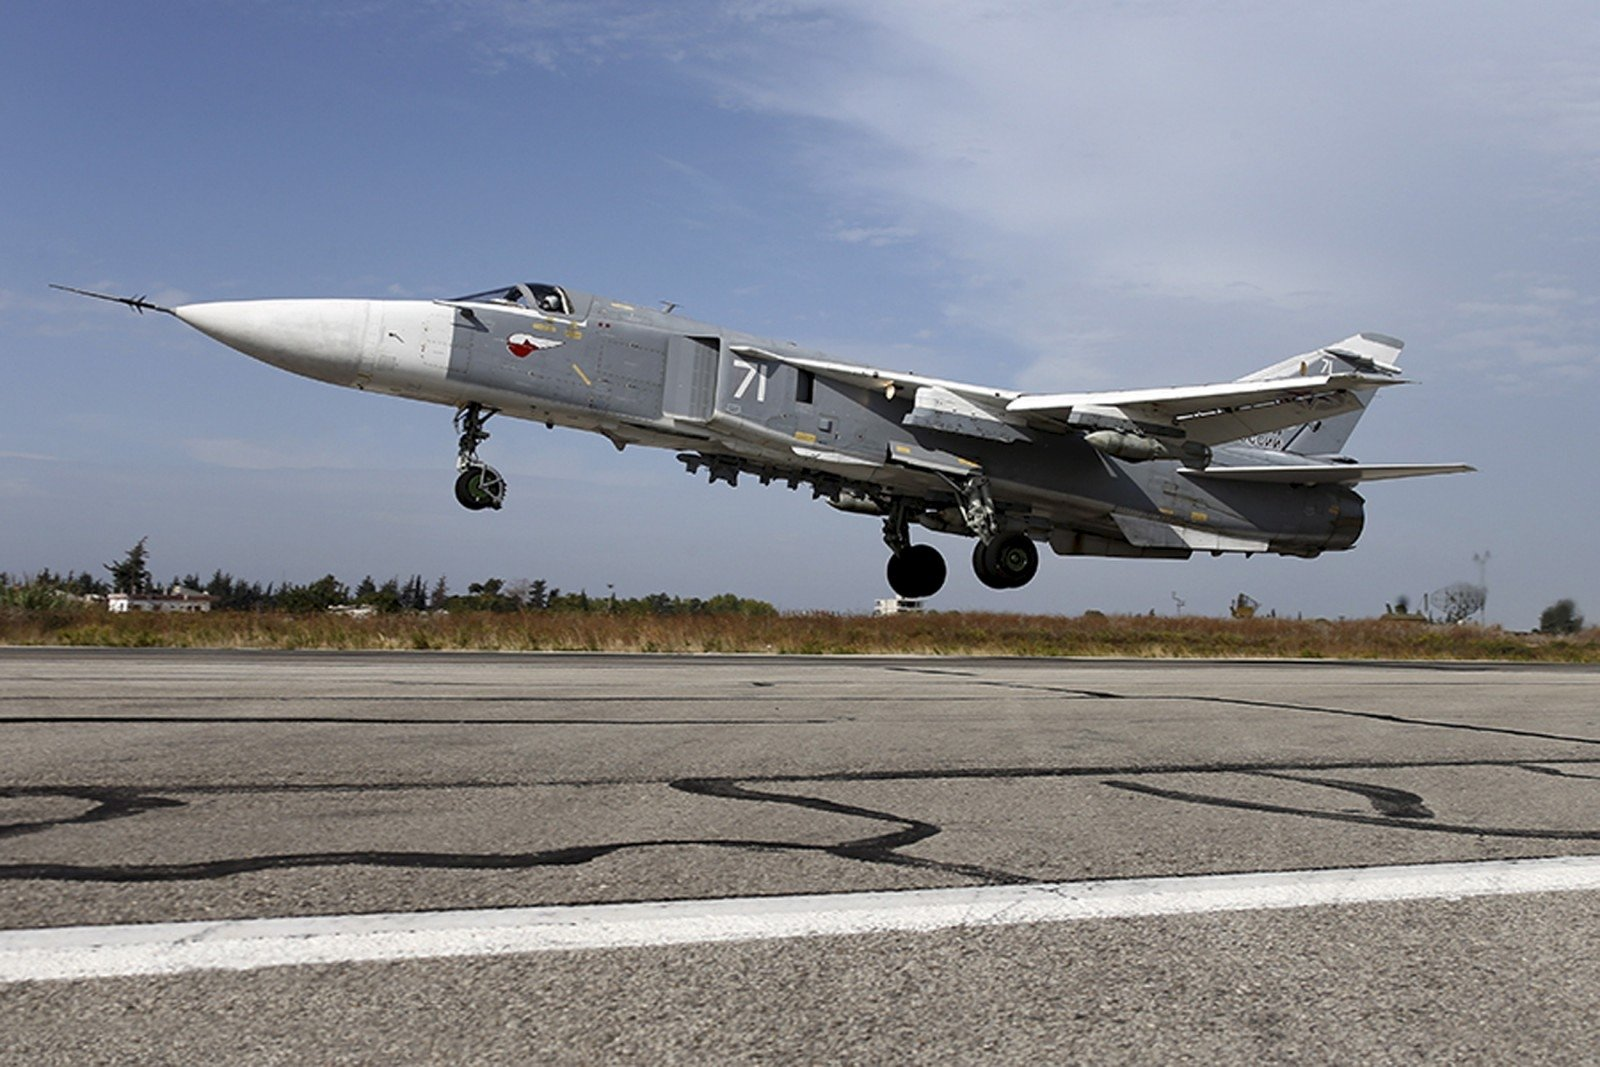 NATO fighter-jets scrambled from Lithuania twice last week over